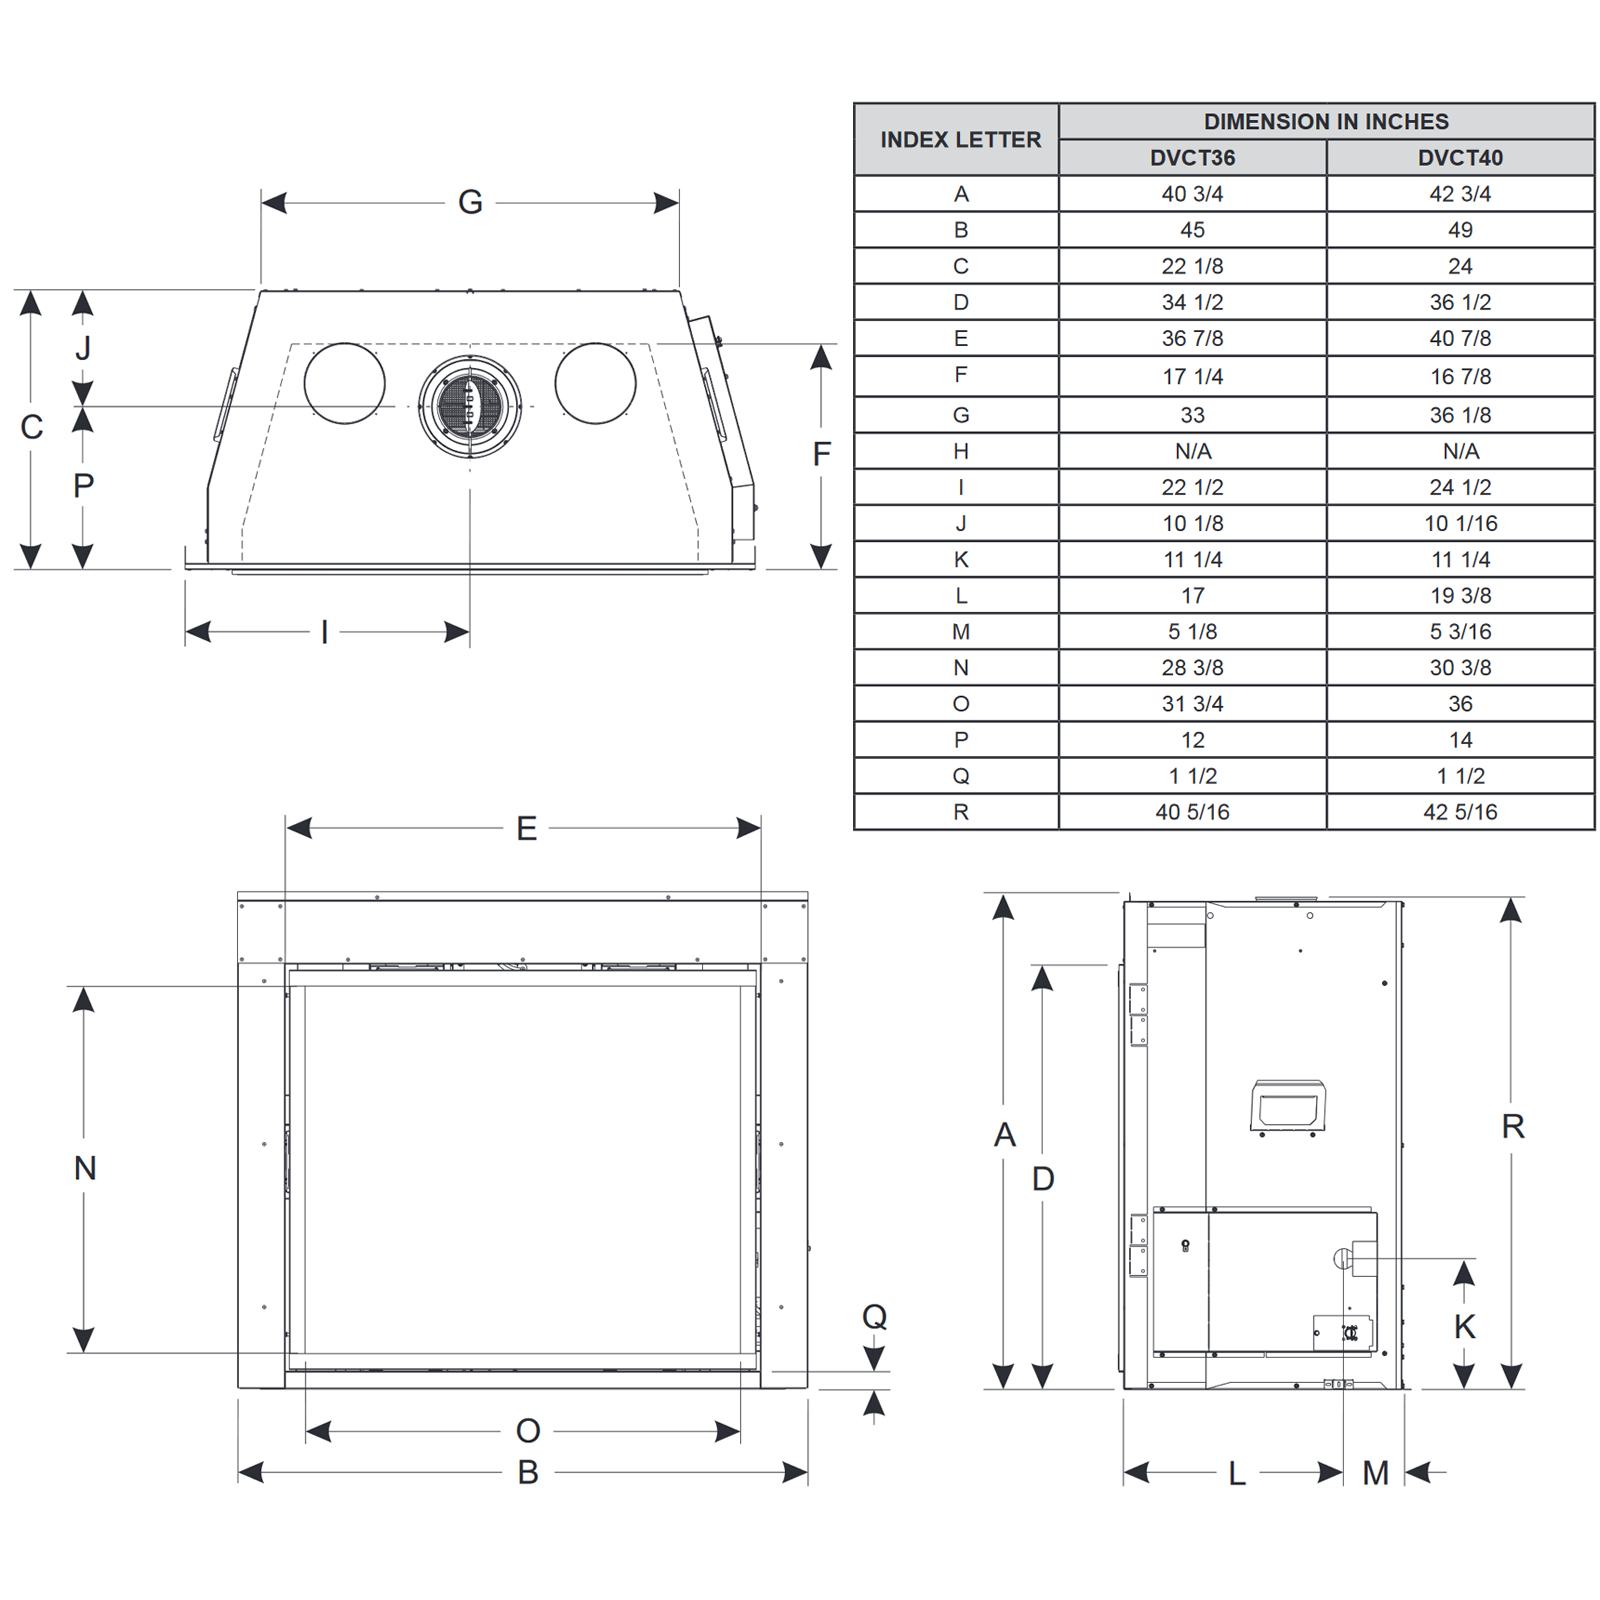 DVCT36 Technical Drawing 1